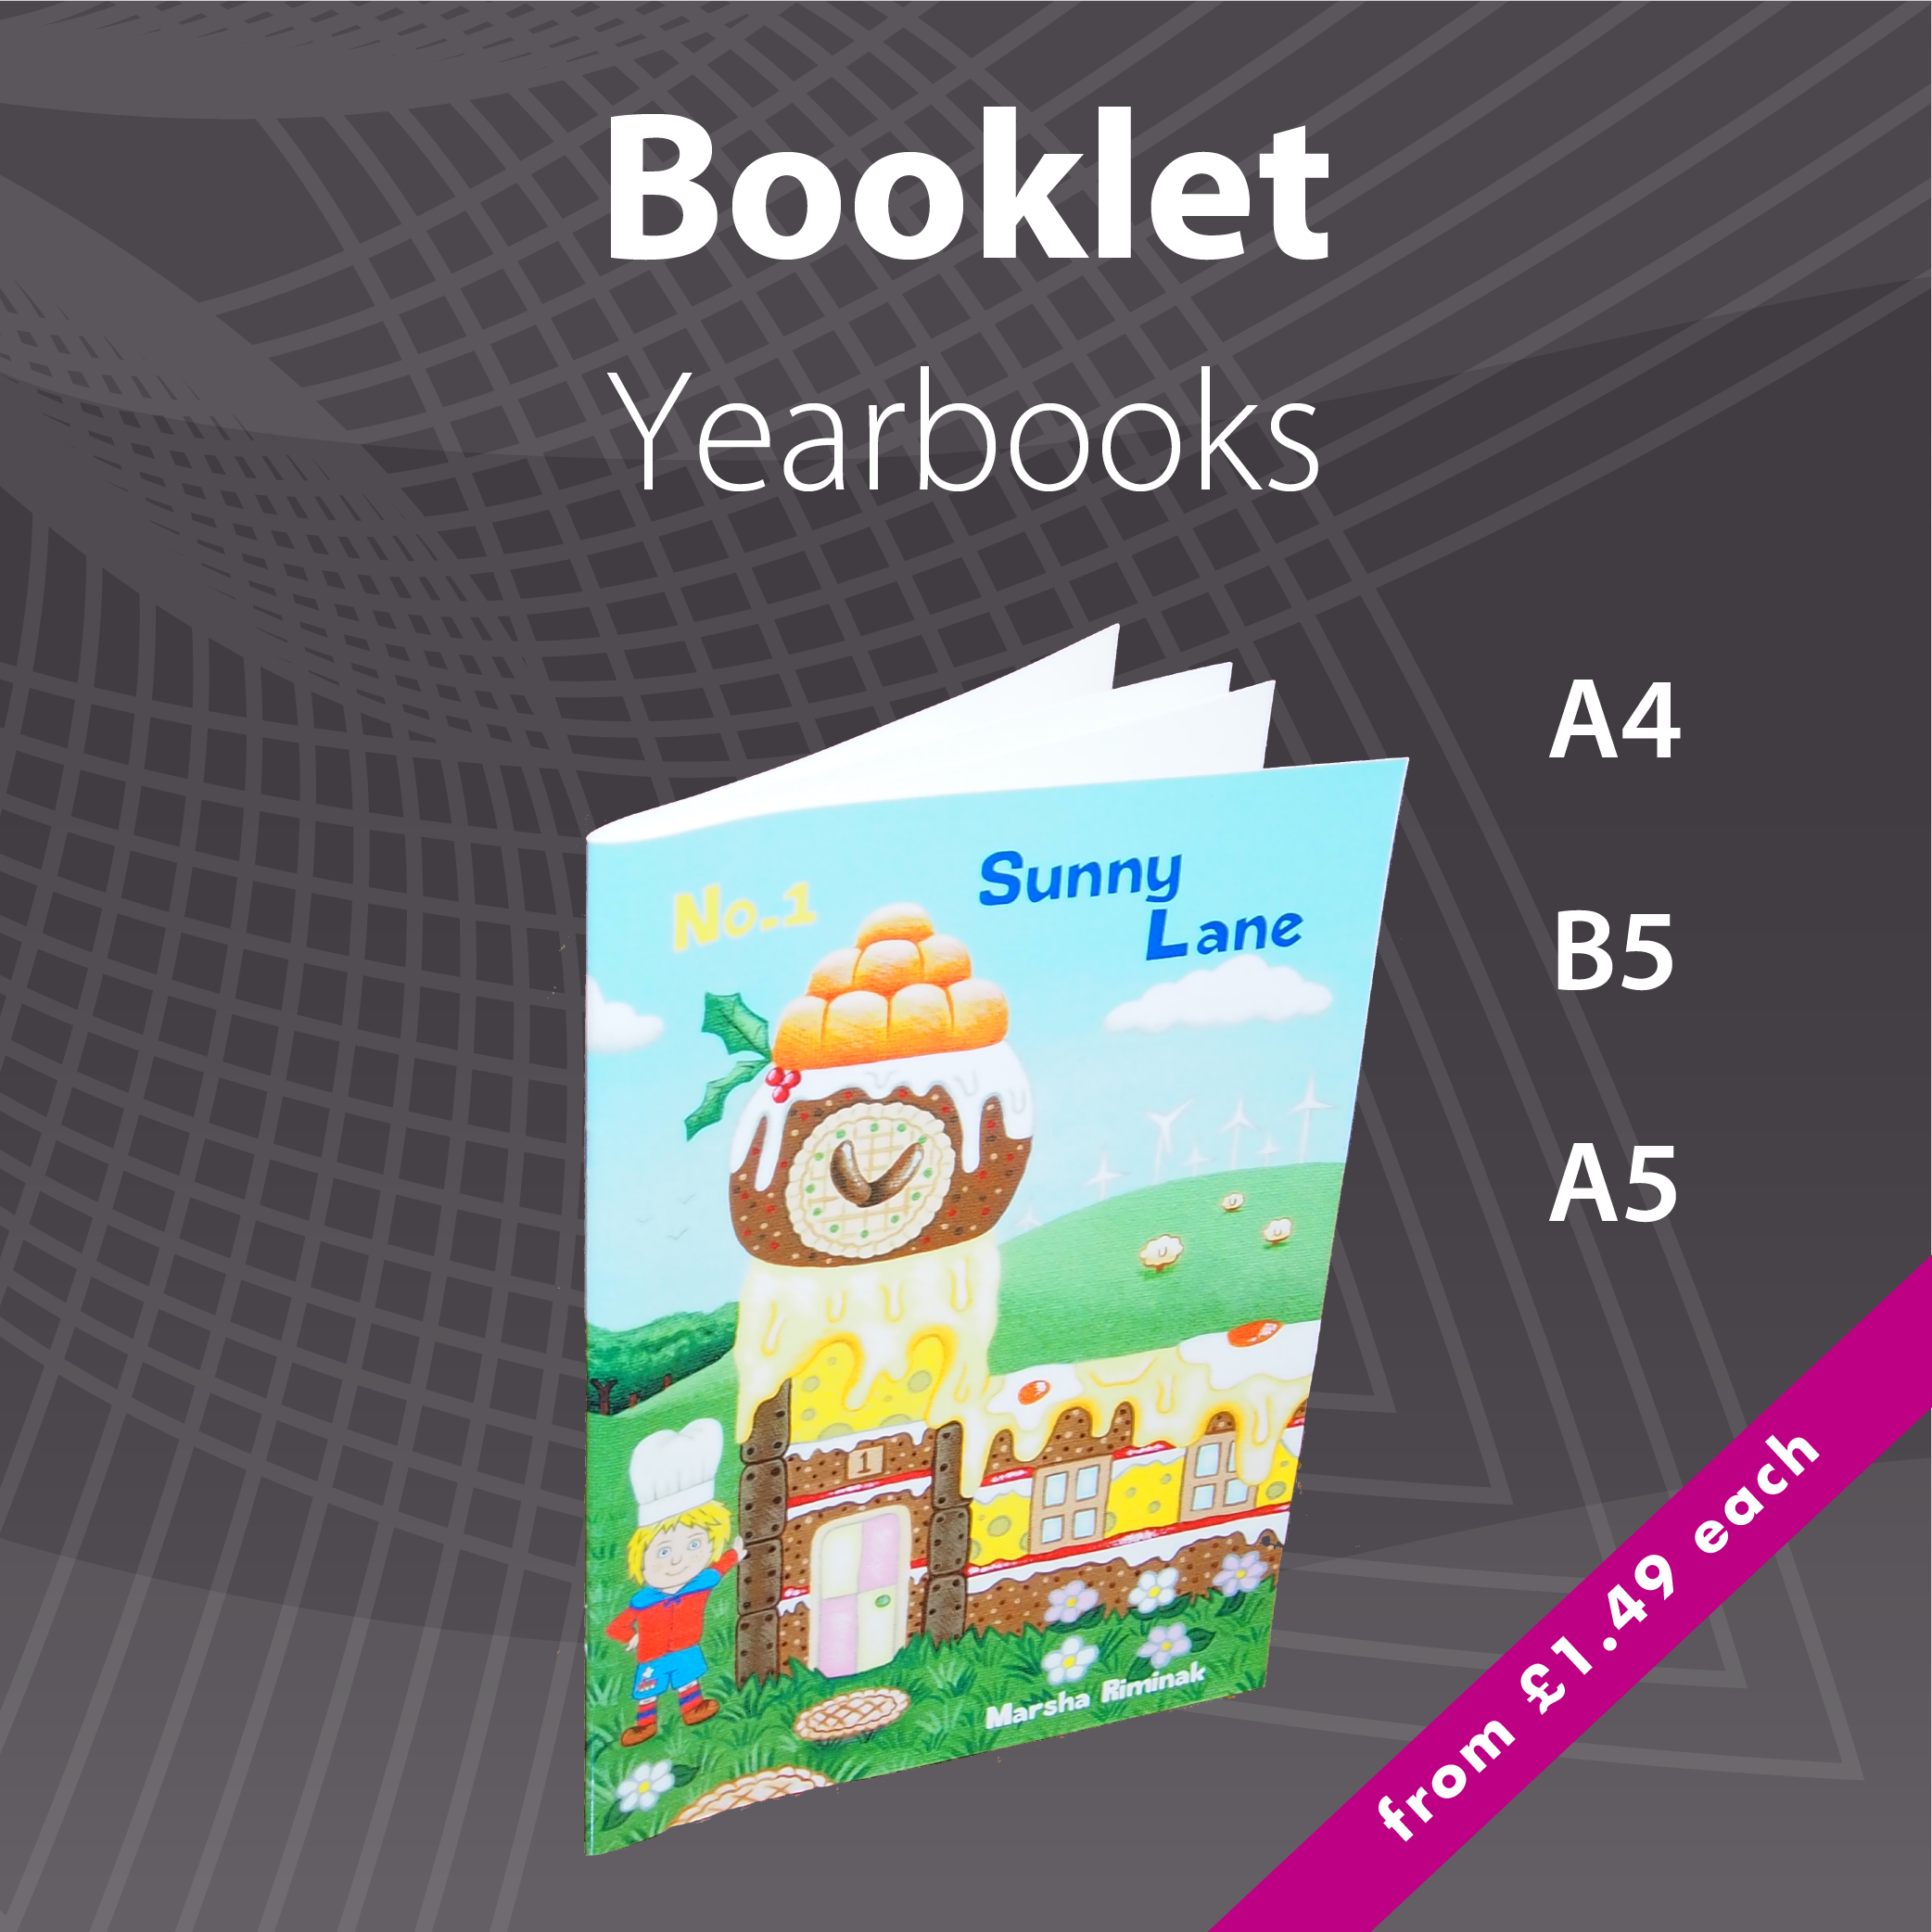 Booklet Yearbooks